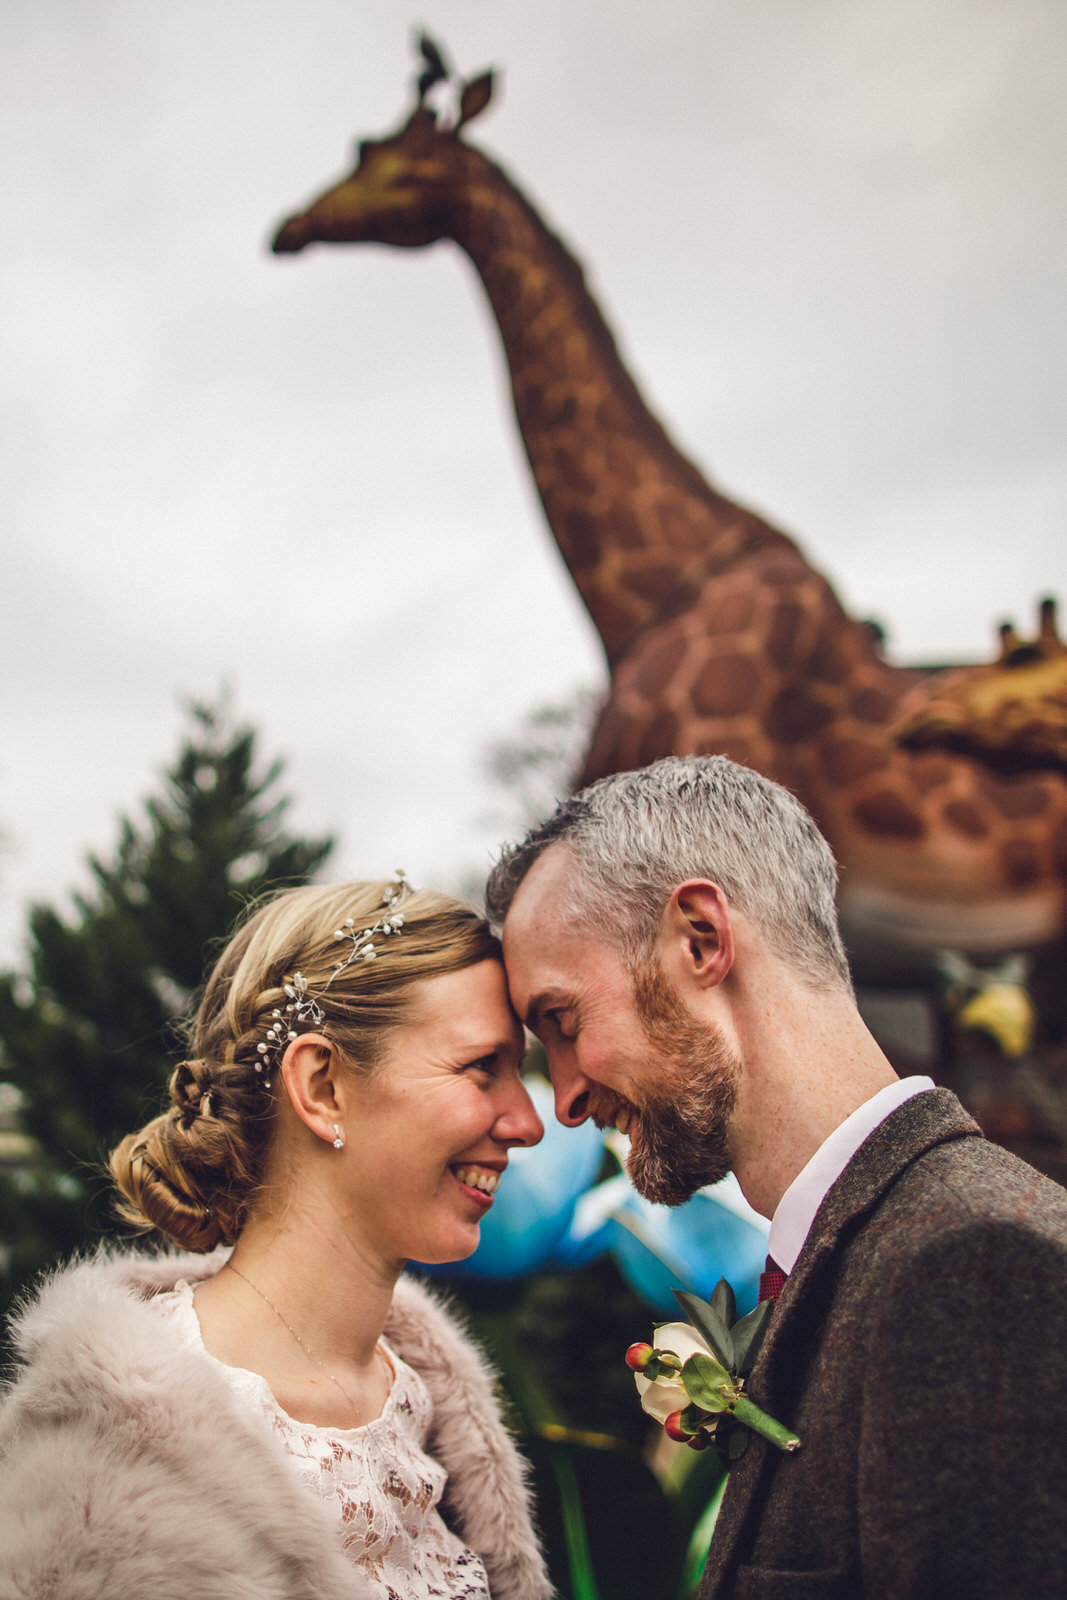 Roger_kenny-wedding-photographer-wicklow-dublin-zoo_061.jpg